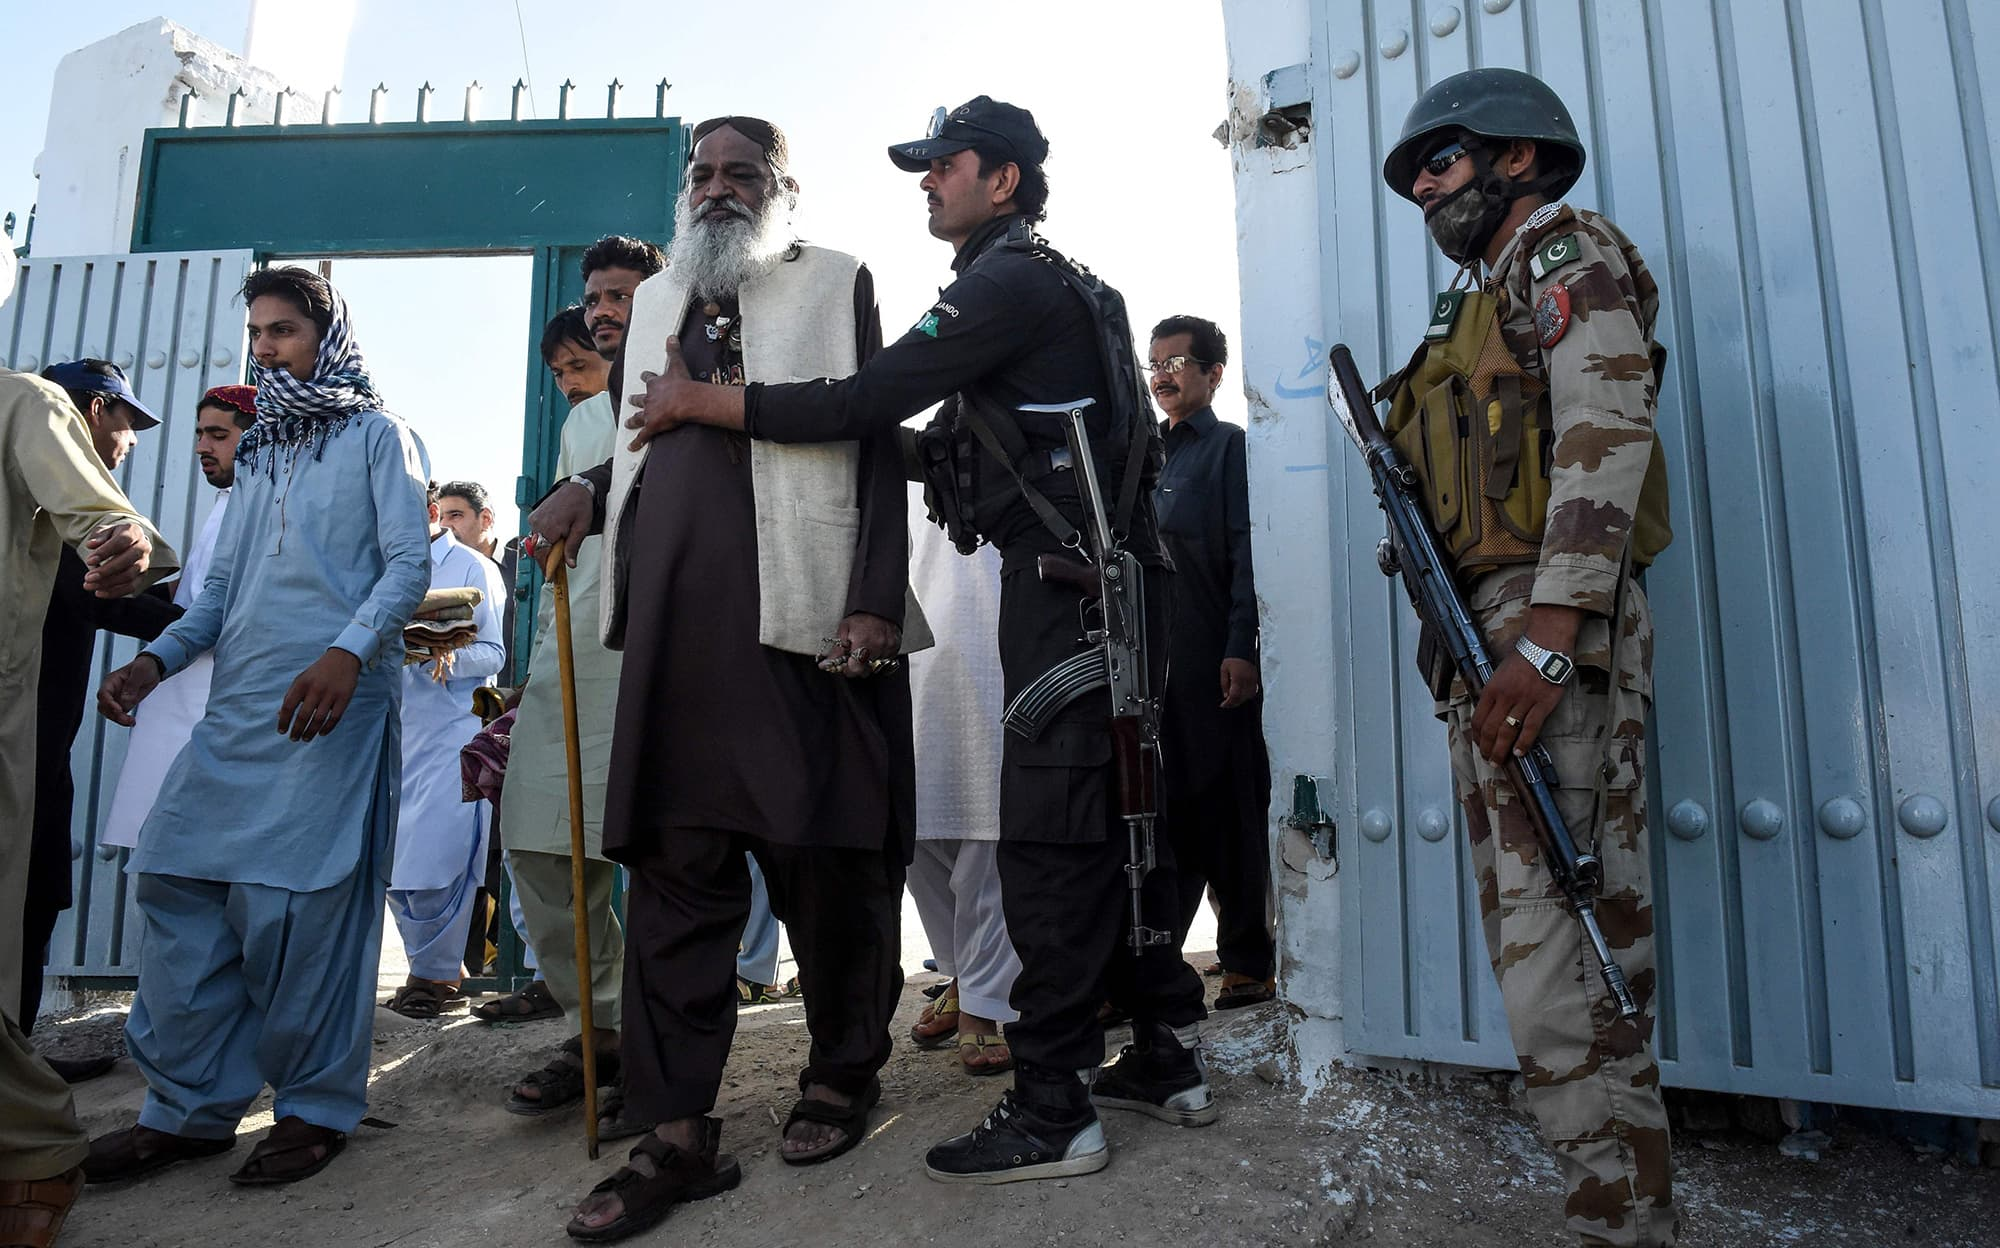 A policeman searches a worshiper as they arrive to offer prayers during Eidul Fitr at Eidgah ground in Quetta. — AFP